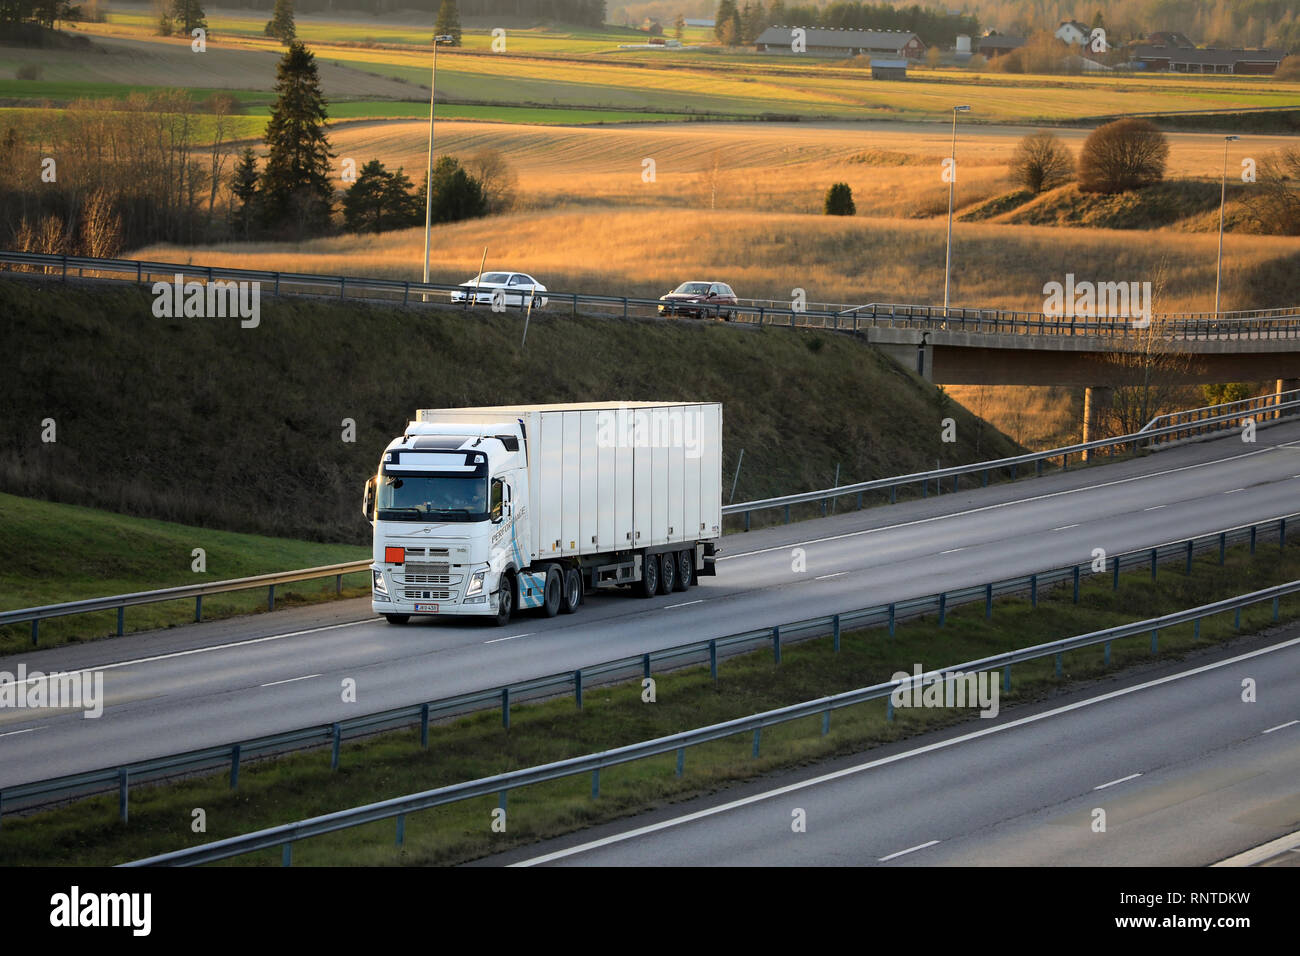 Salo, Finland - November 18, 2018: White Volvo FH semi trailer